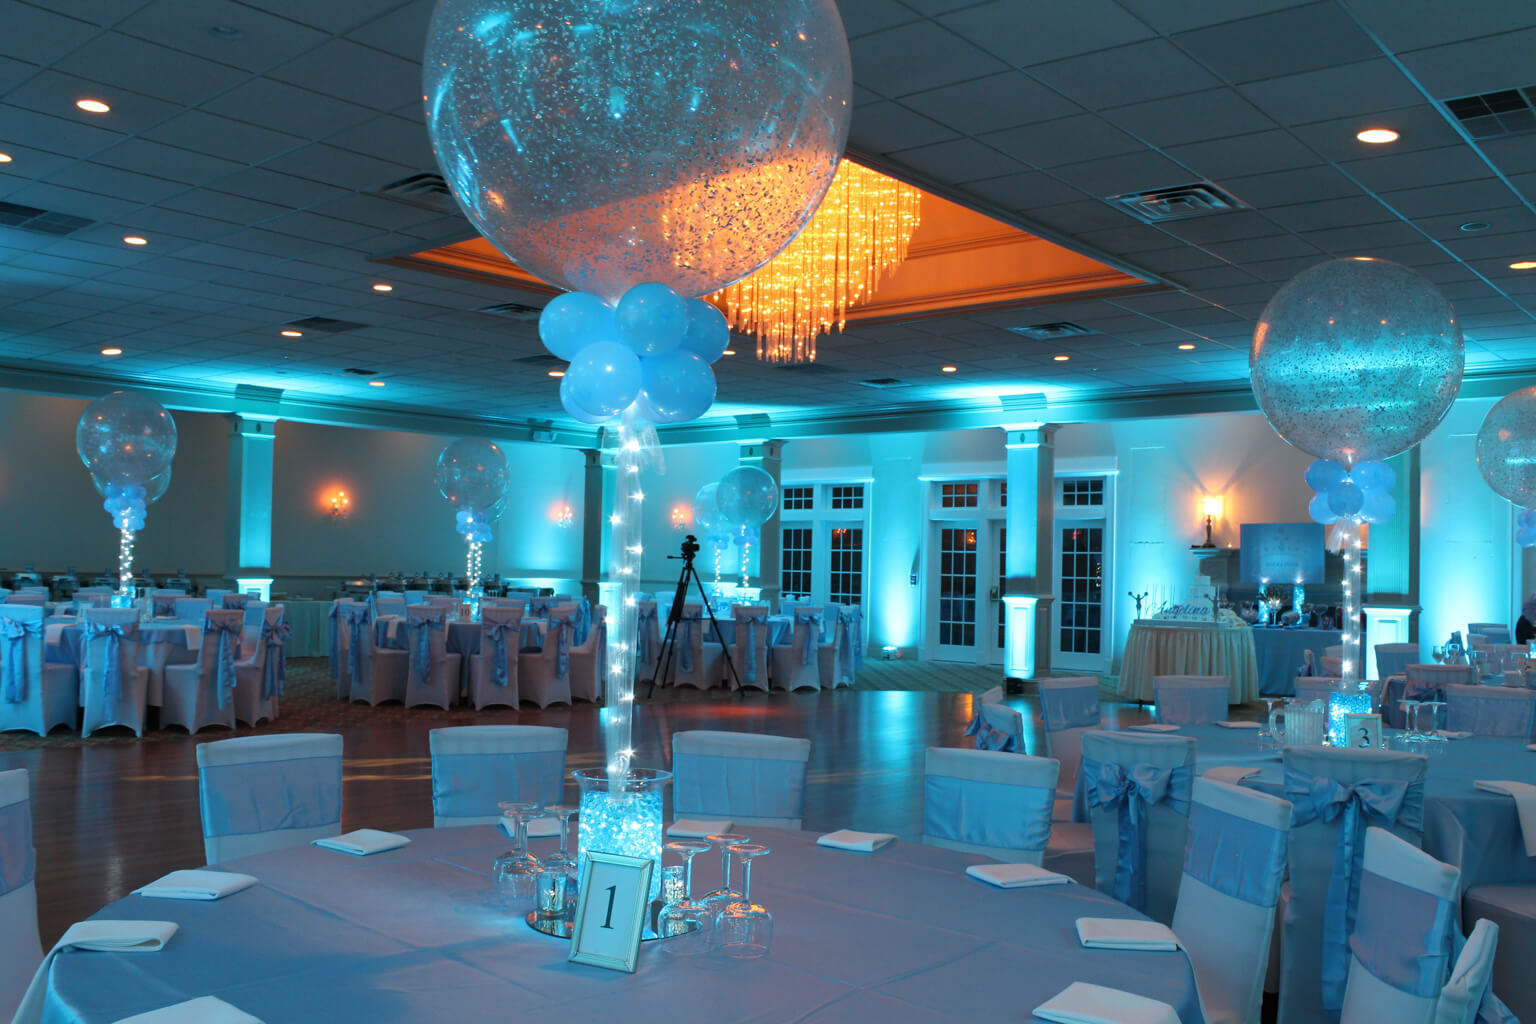 Uplighting Balloon Artistry